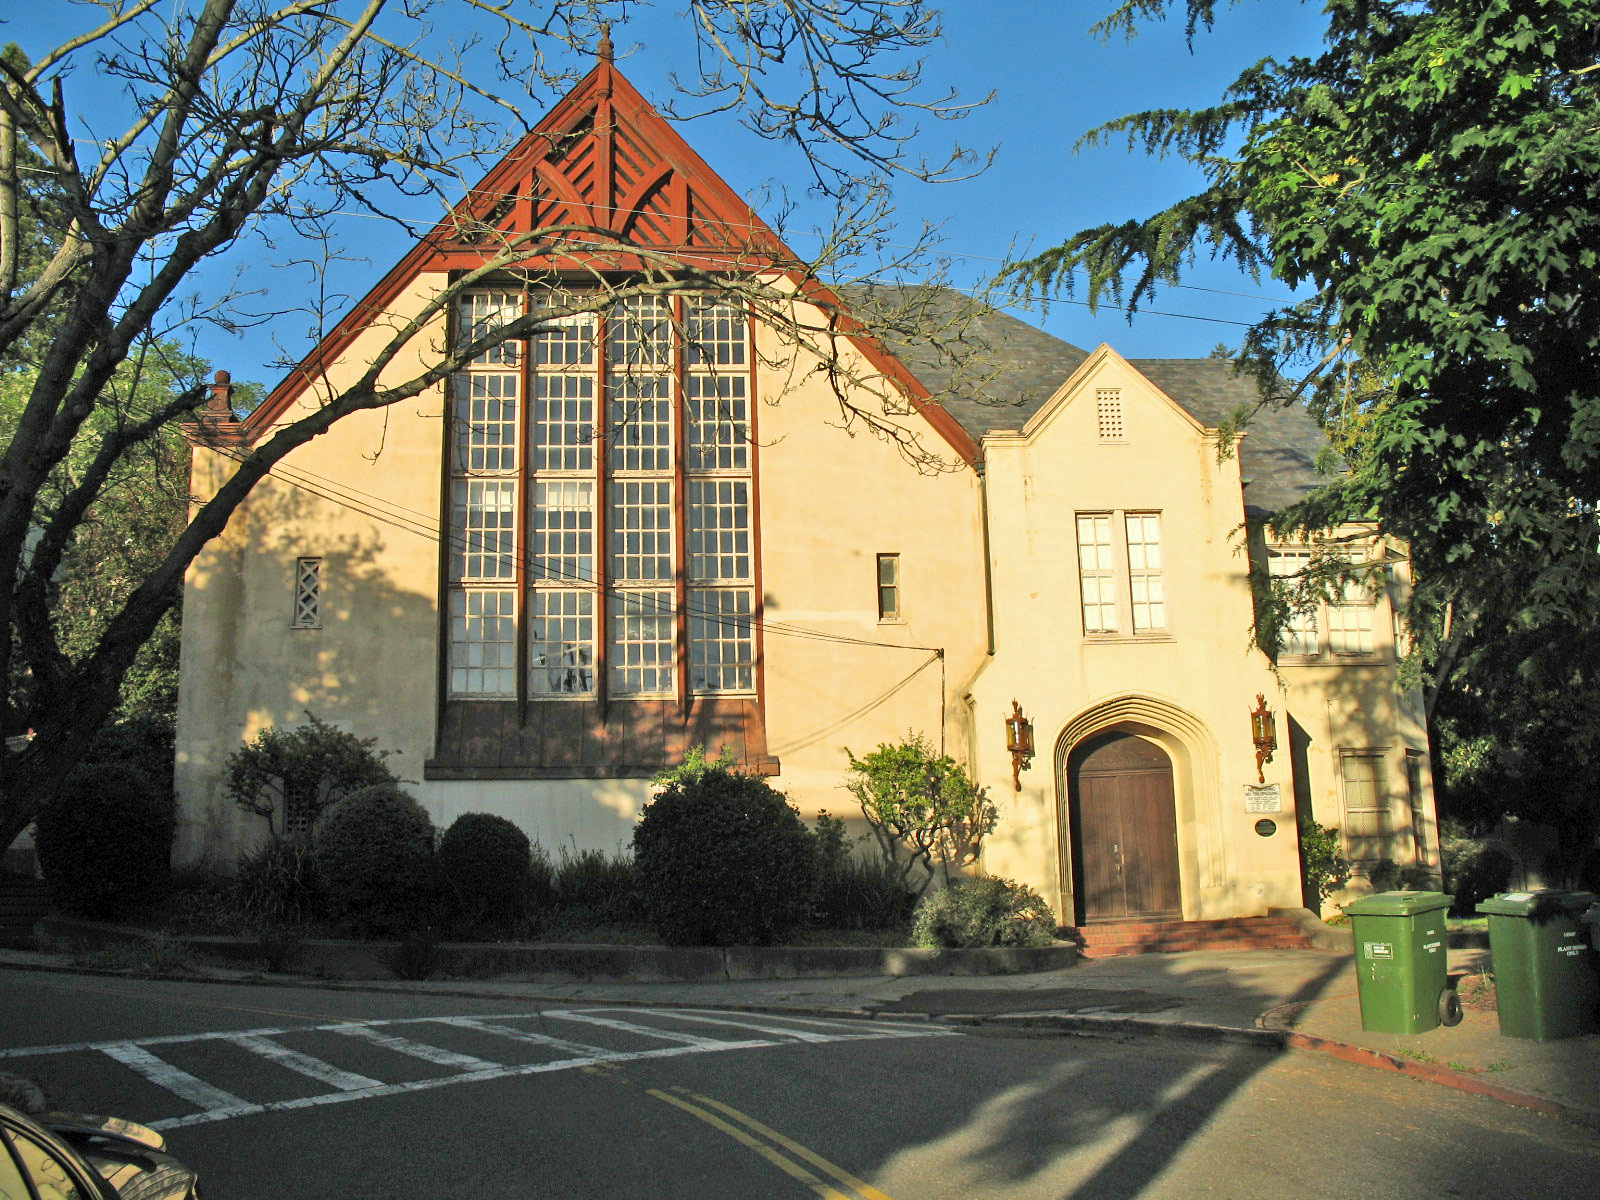 A Tudor building with a white facade, red eaves, and high arched roof.